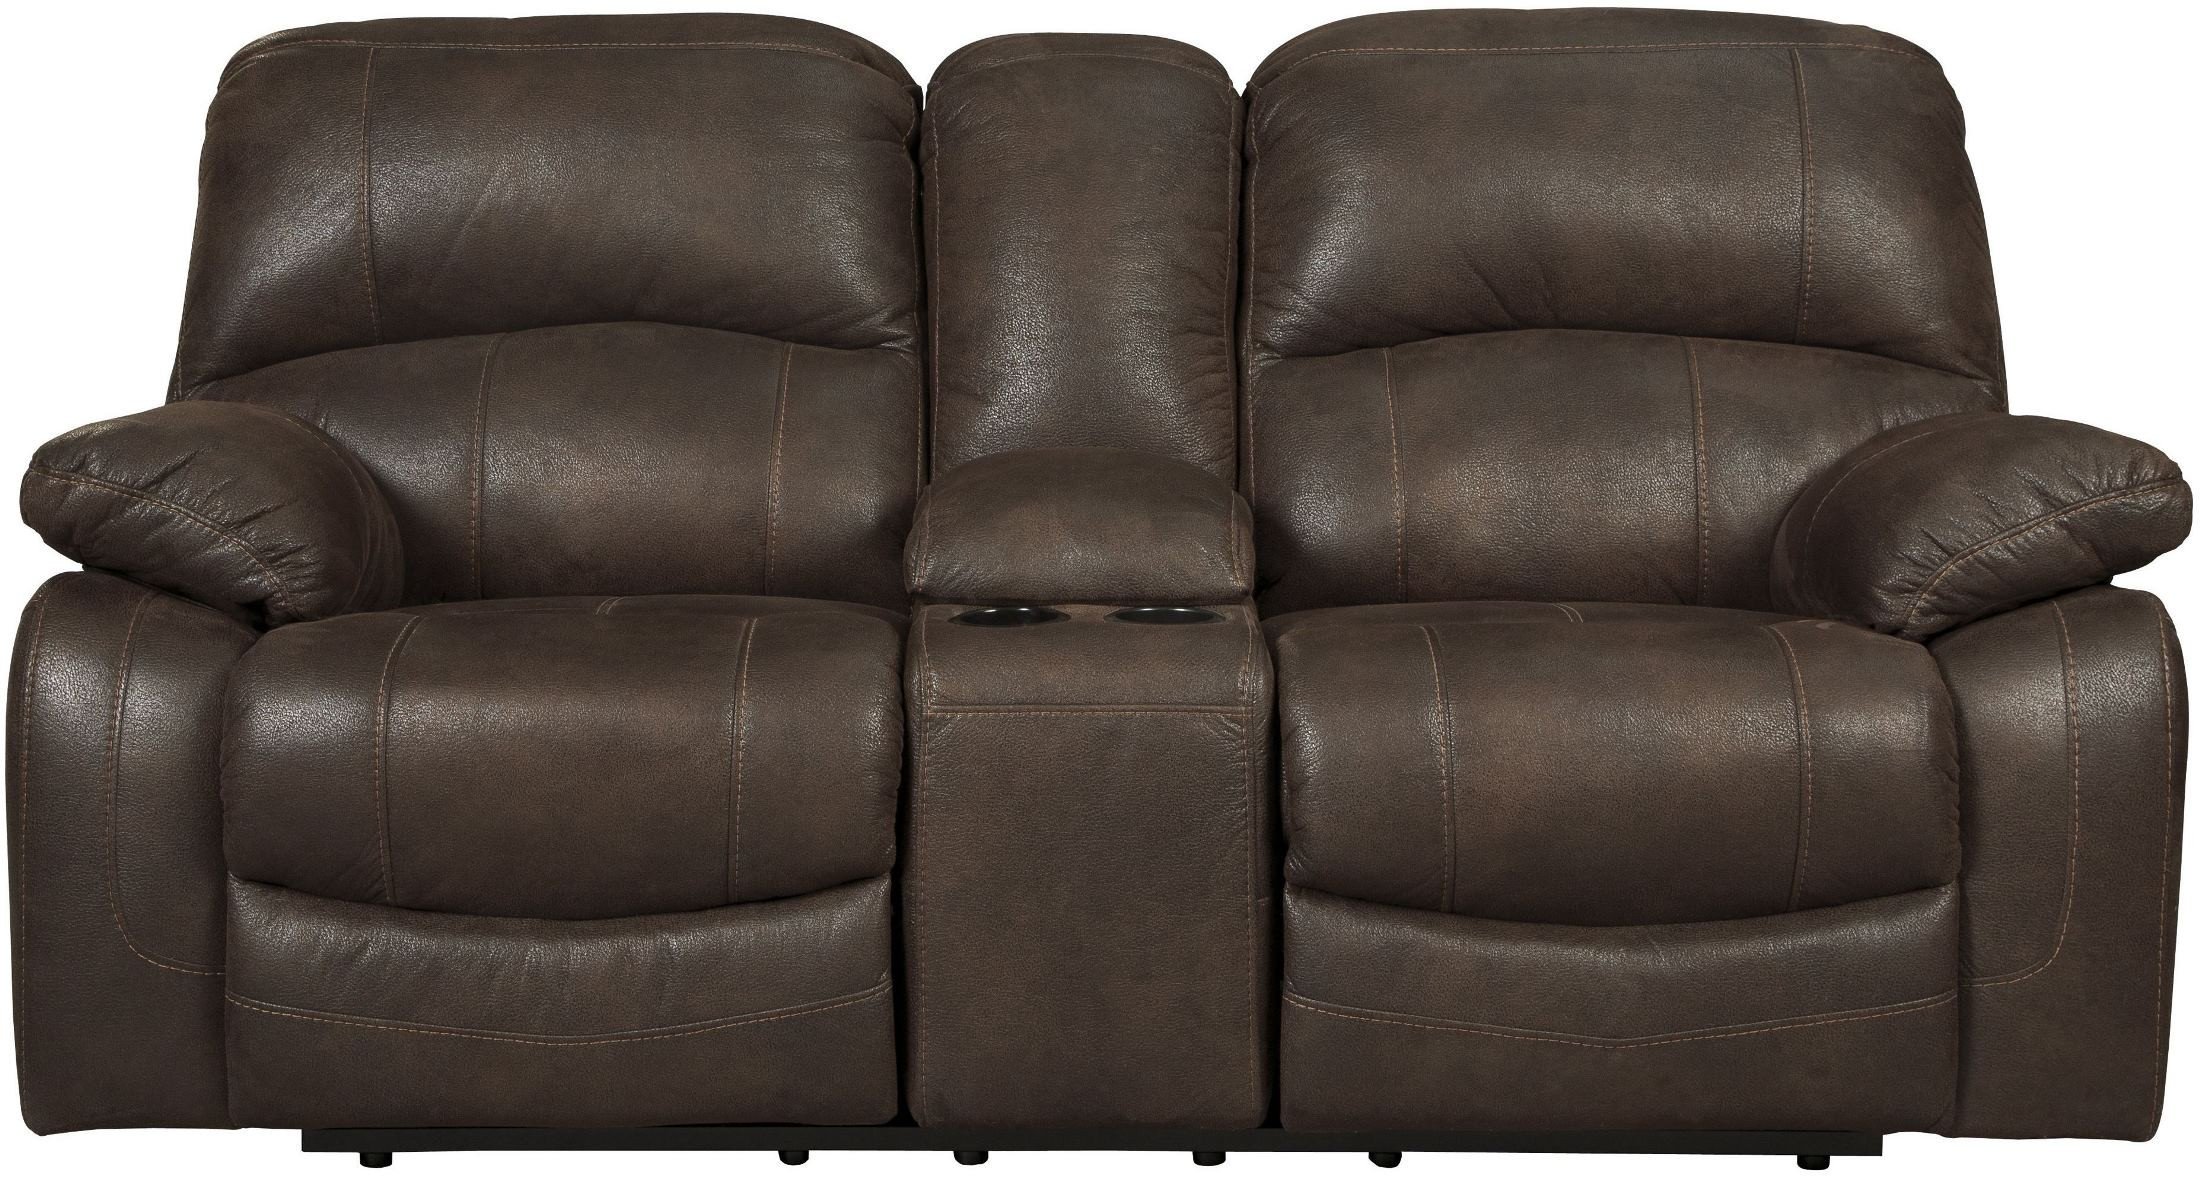 Zavier Truffle Glider Power Reclining Console Loveseat From Ashley 4290191 Coleman Furniture